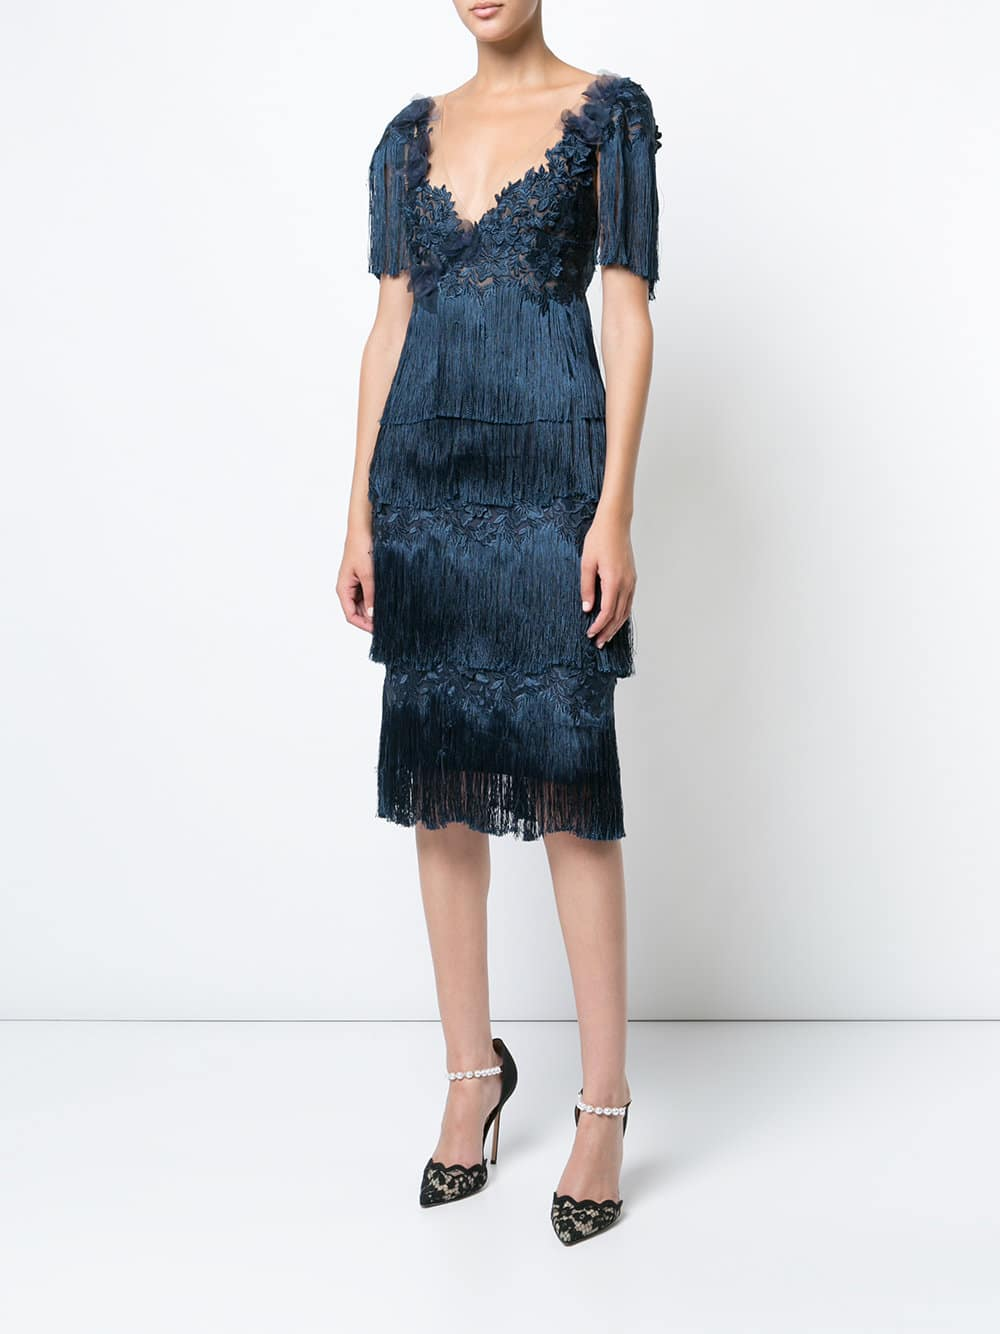 MARCHESA NOTTE Fringed Navy Dress